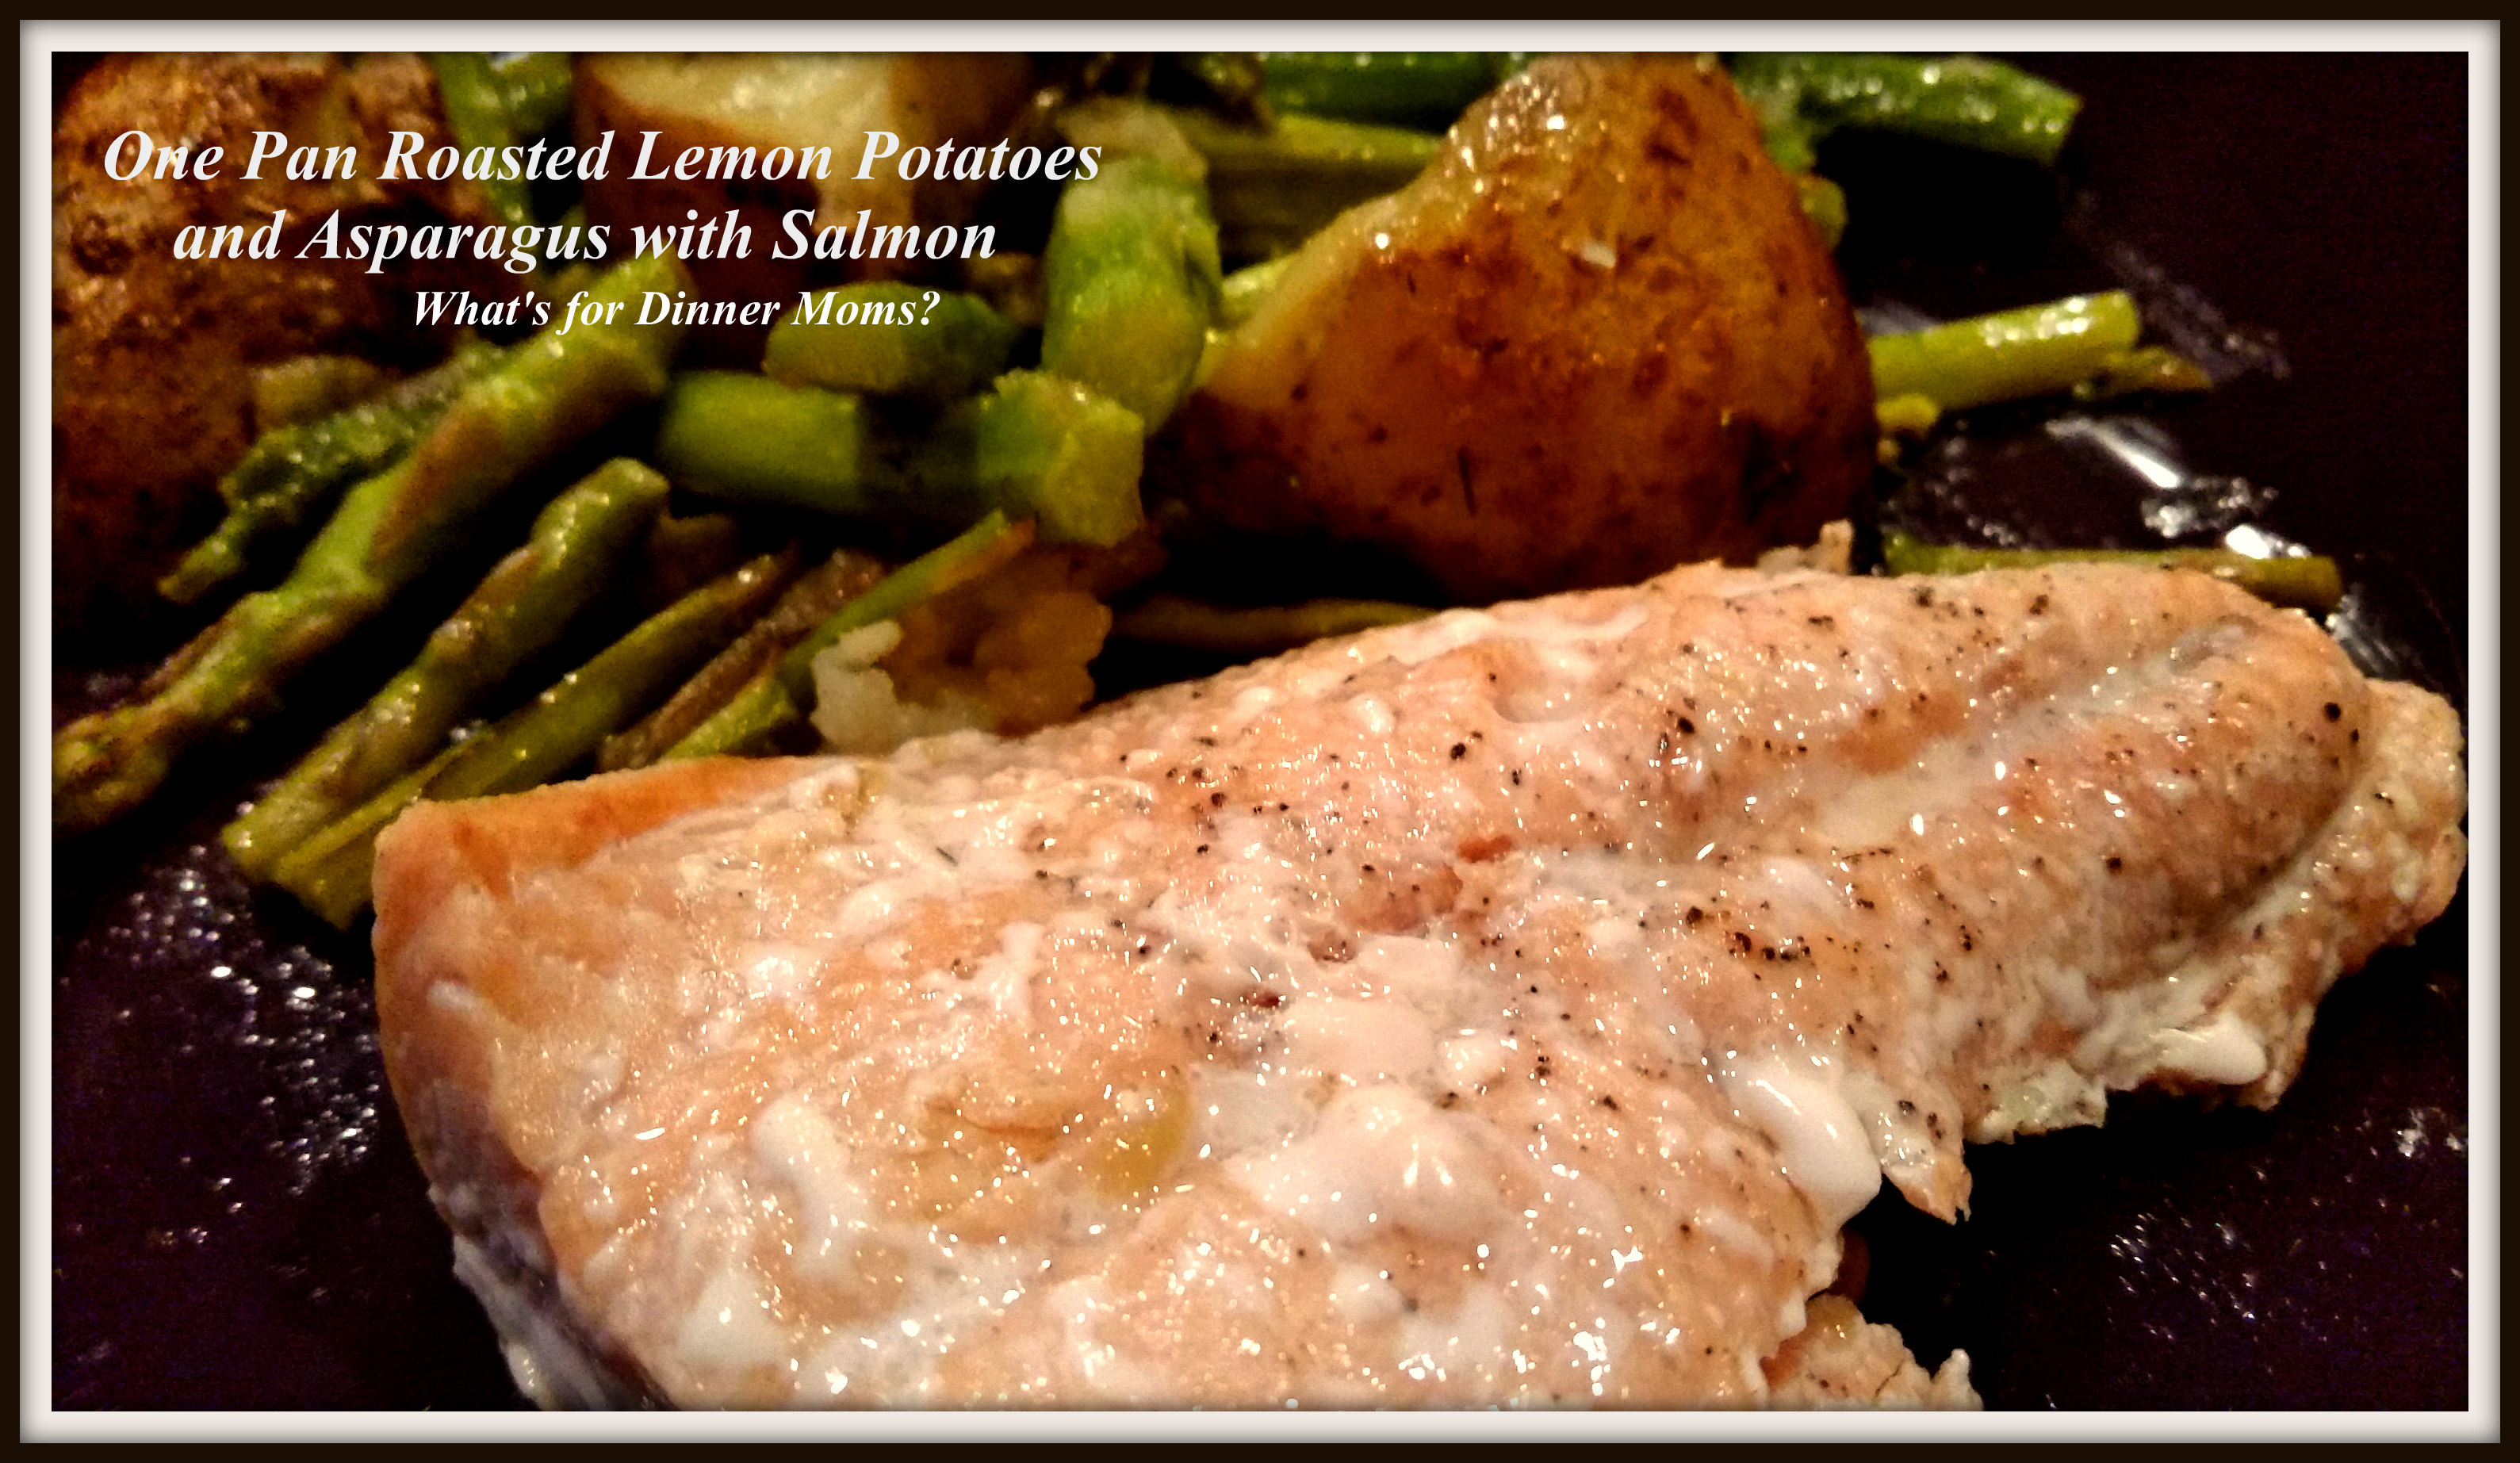 One Pan Roasted Lemon Potatoes and Asparagus with Salmon ...